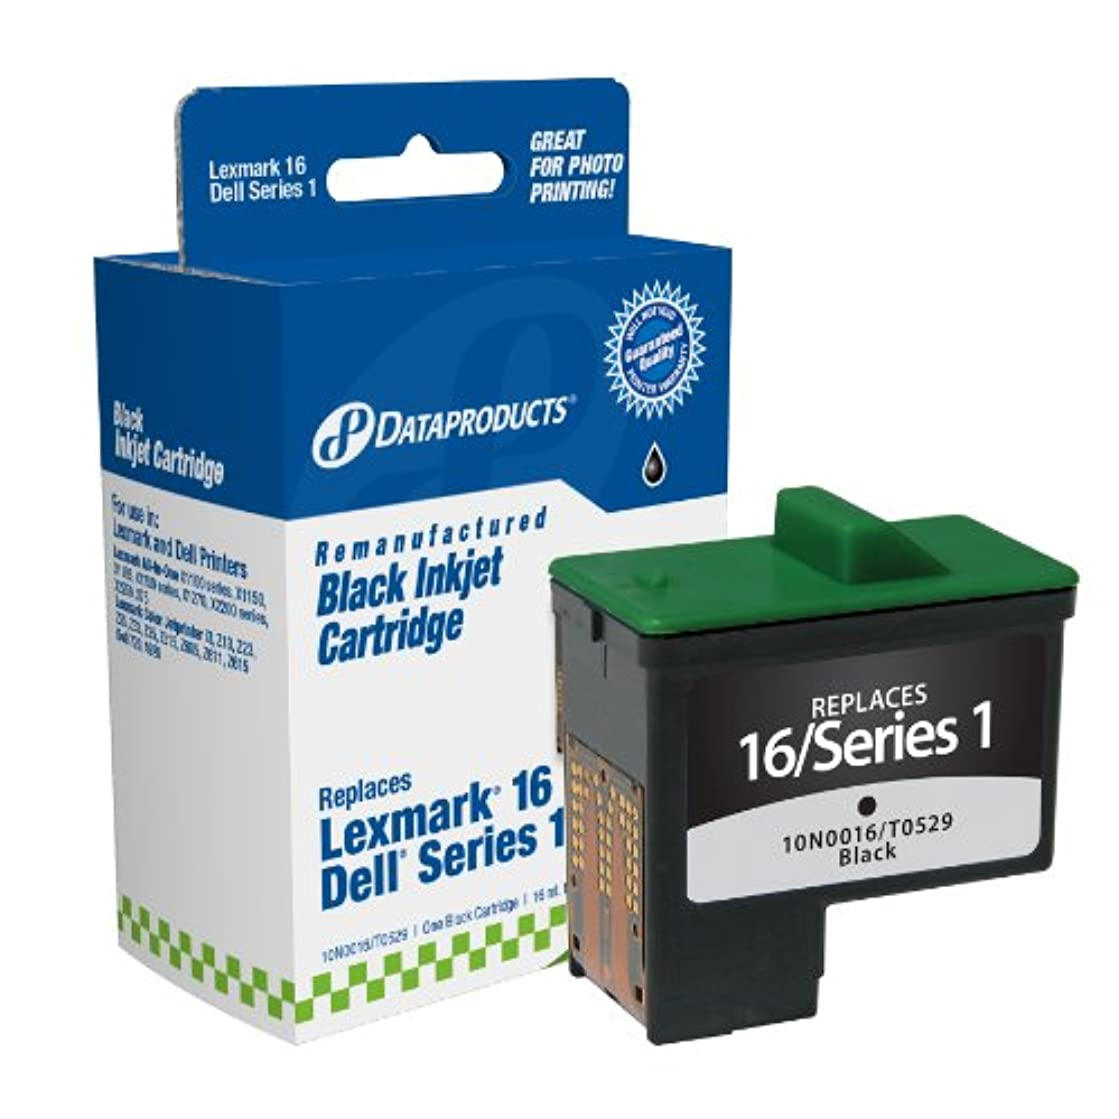 Dataproducts DPCD5878B Remanufactured Ink Cartridge Replacement for Dell T0529 (Series 1), Sharp UXC70B (Black)